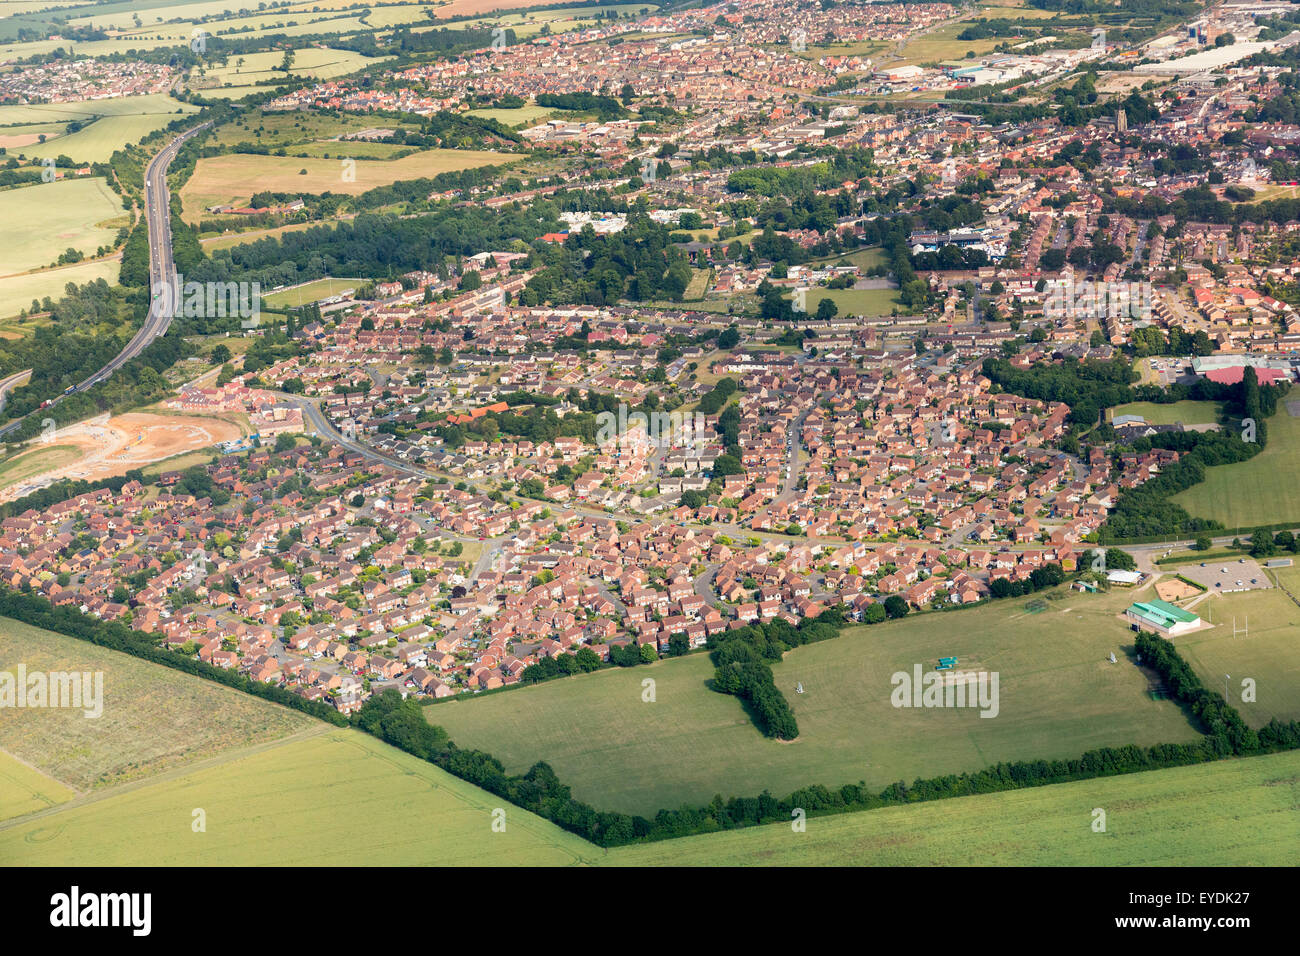 aerial view of the Chilton housing estate in Stowmarket, Suffolk, UK - Stock Image